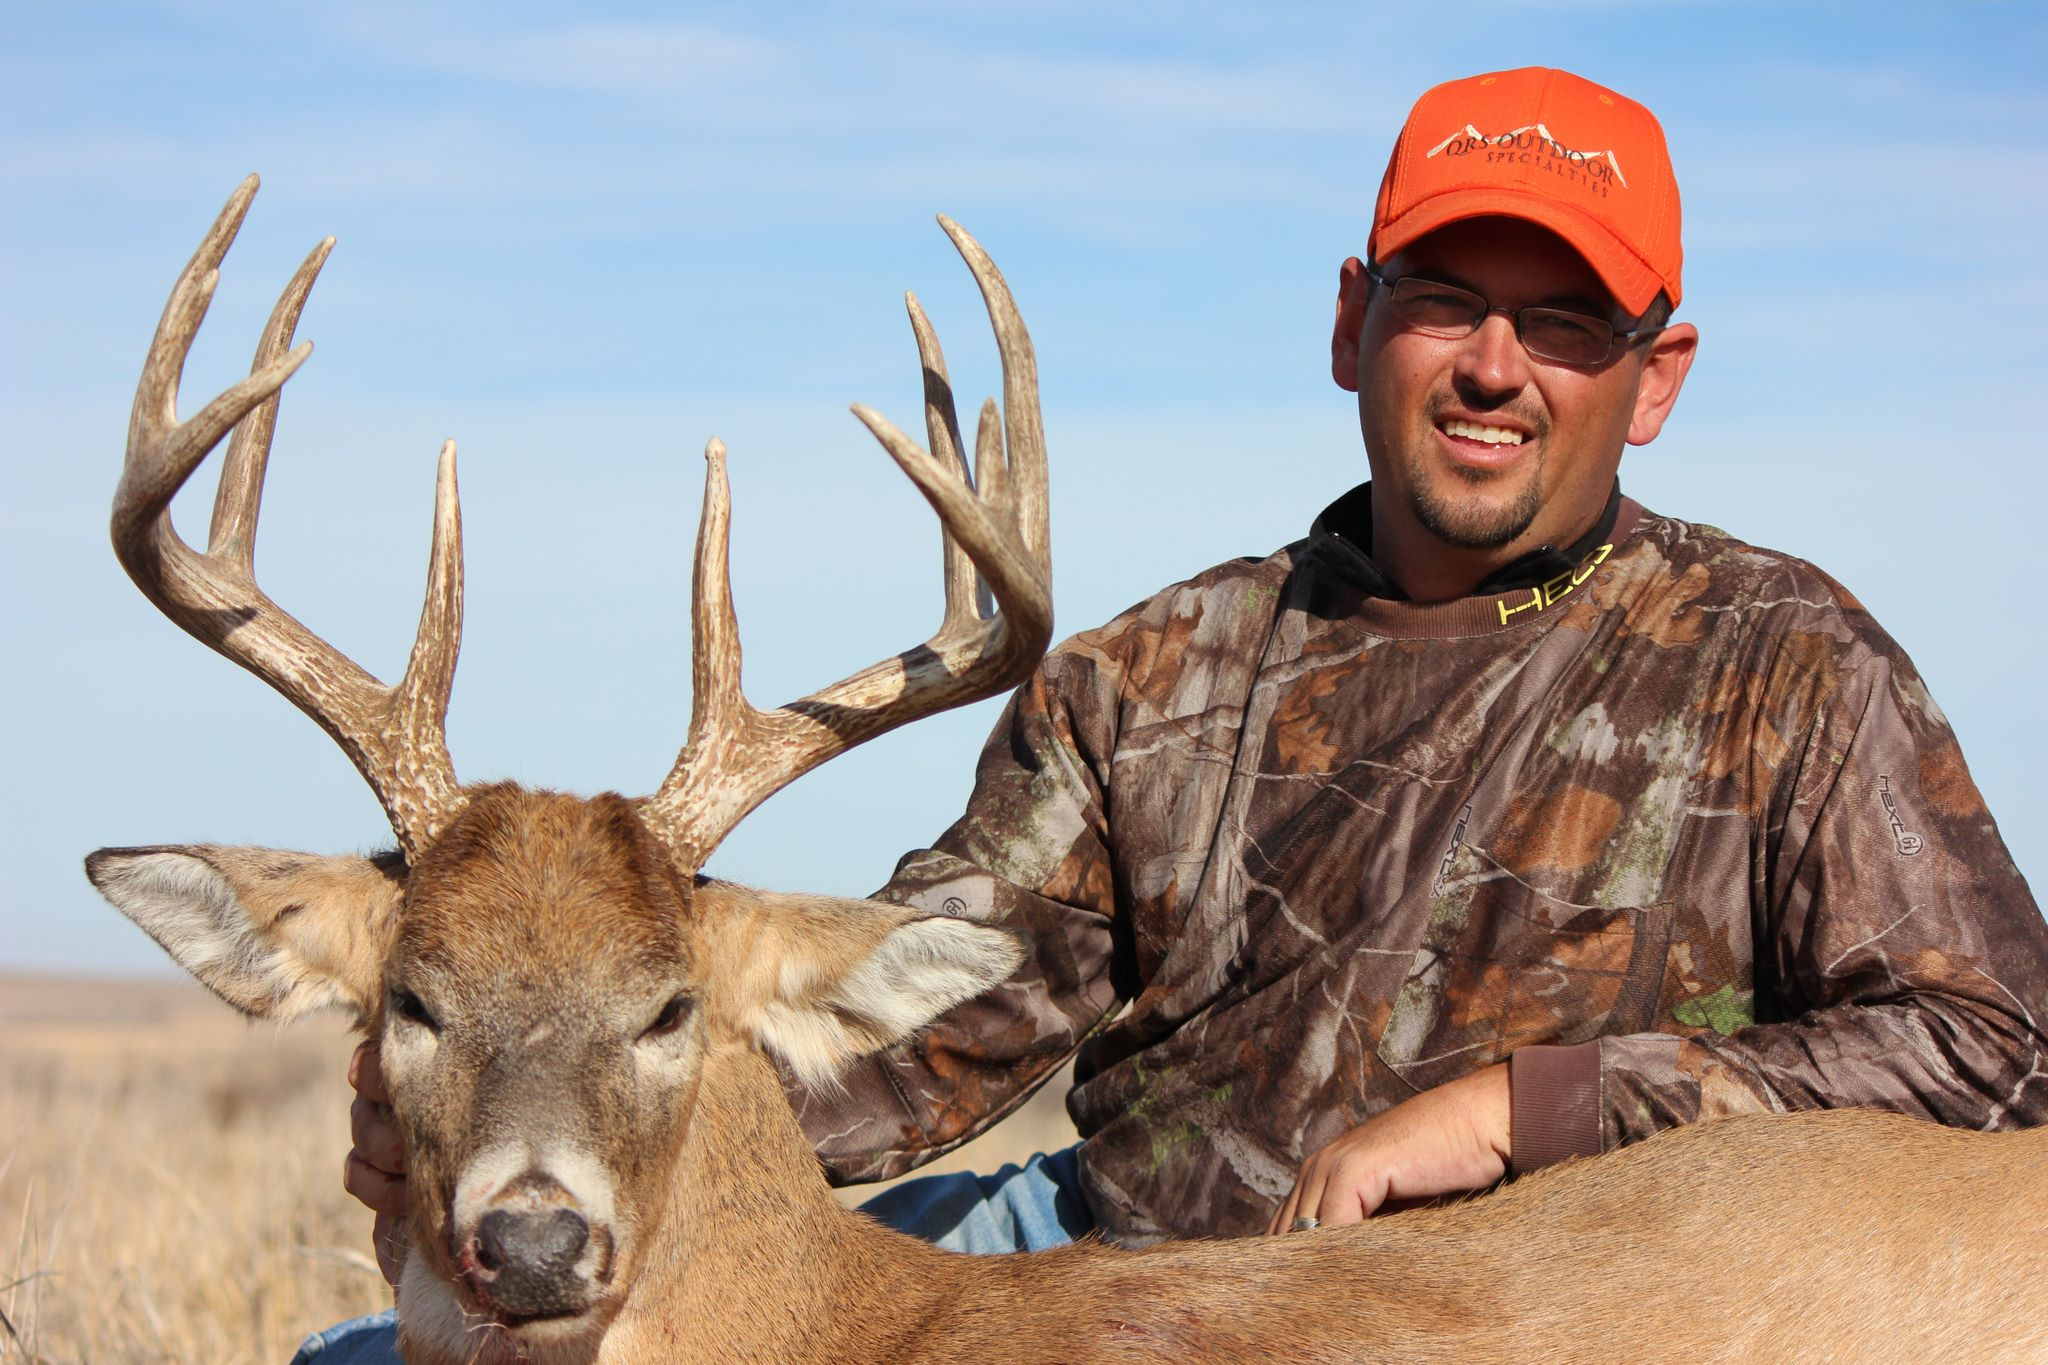 July 15: QRS Outdoor Specialties Big Game Hunting and Outdoor Buddies